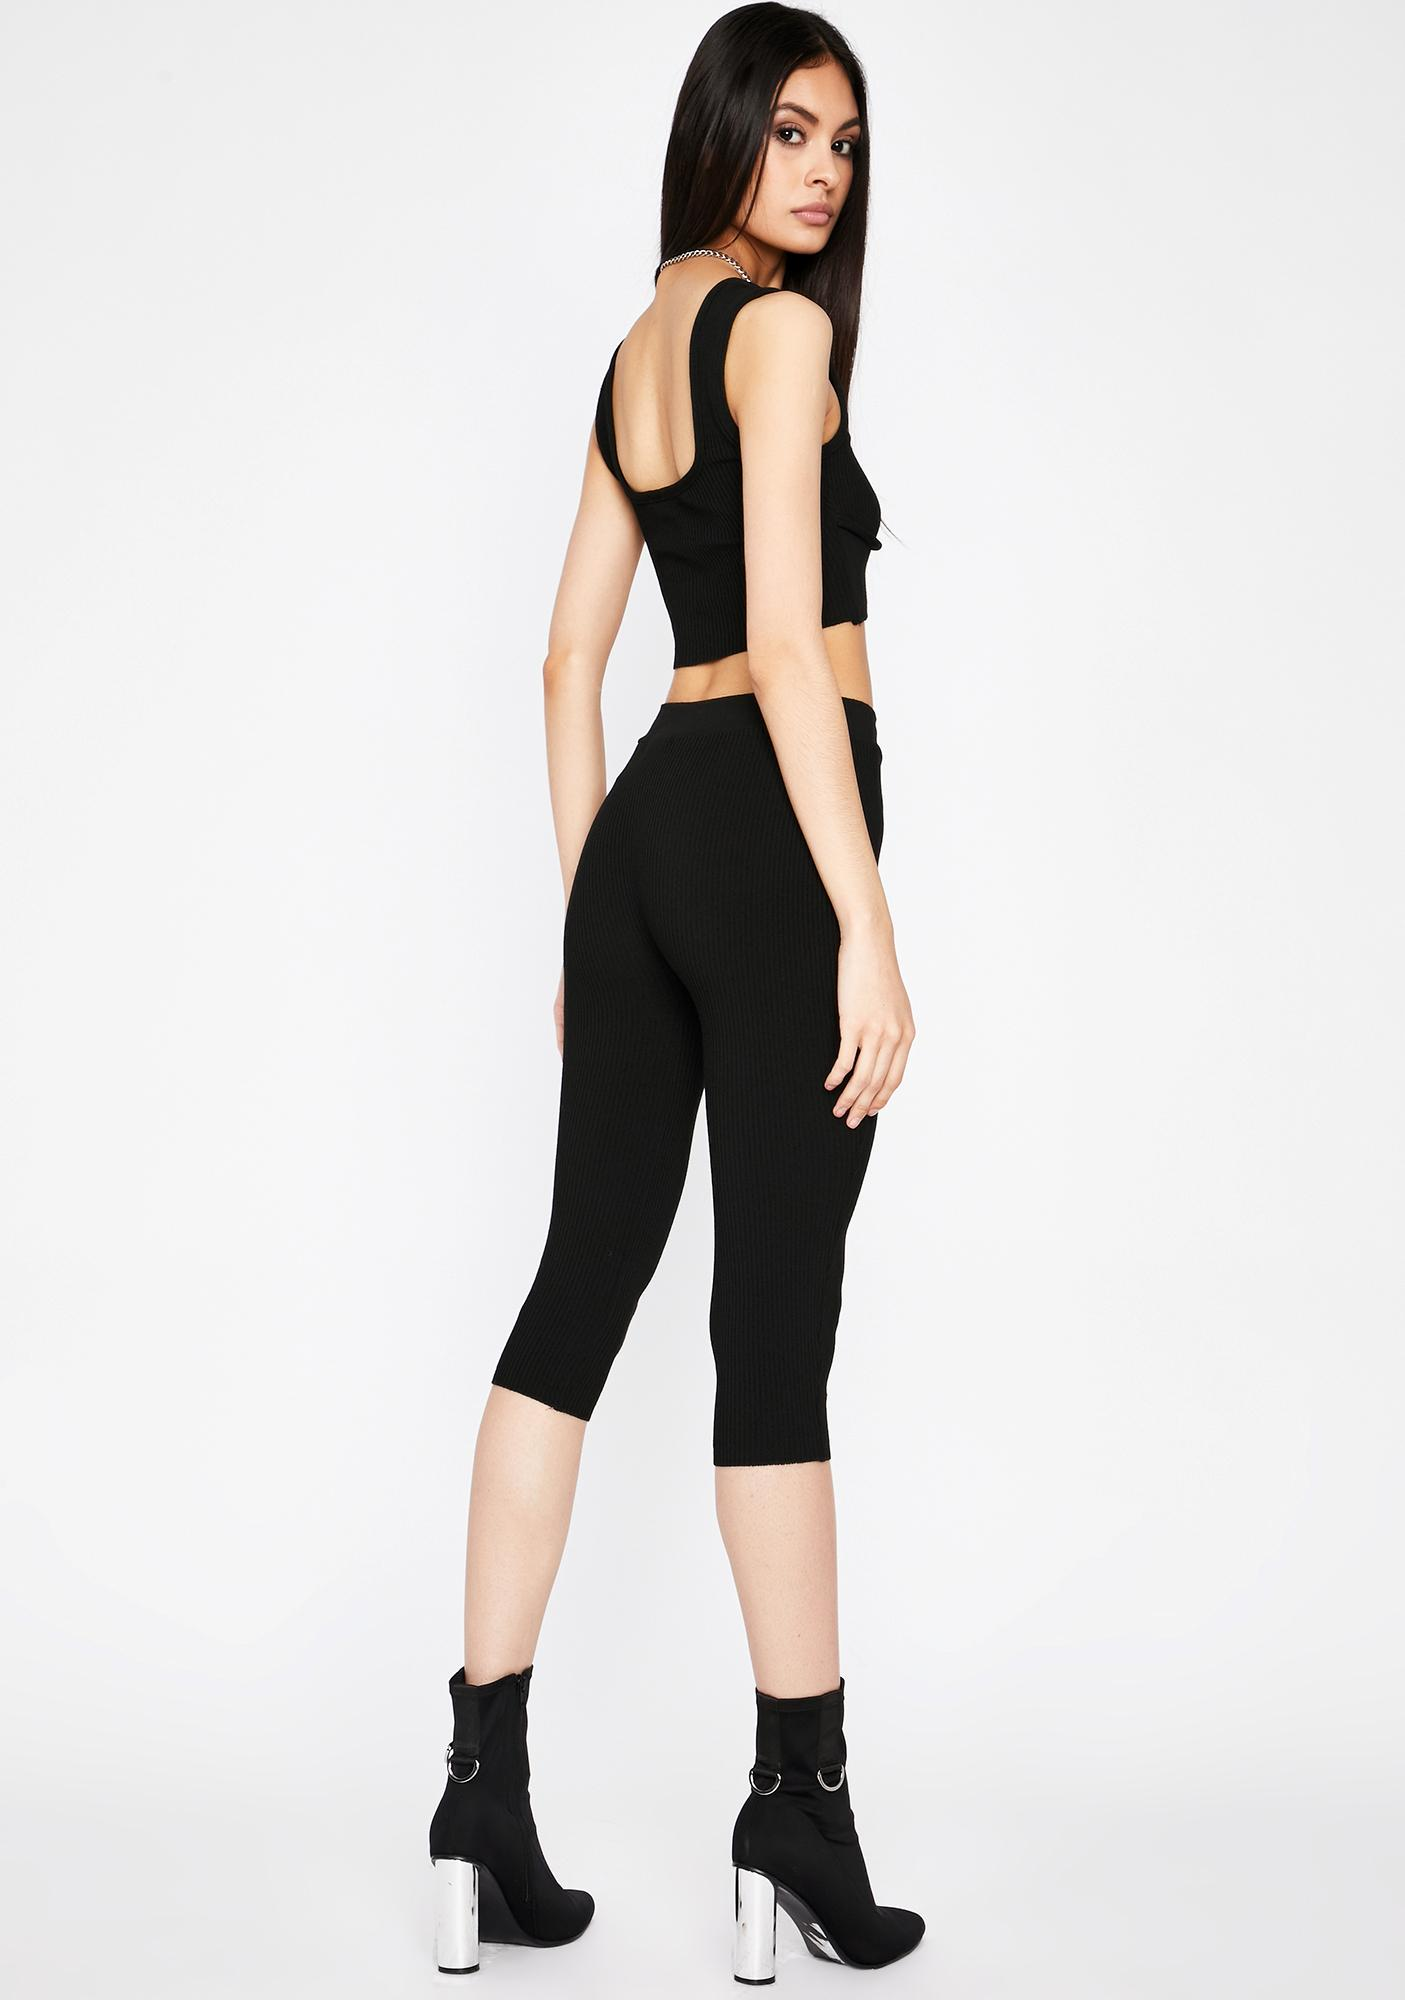 Deep Flex Leggings Set